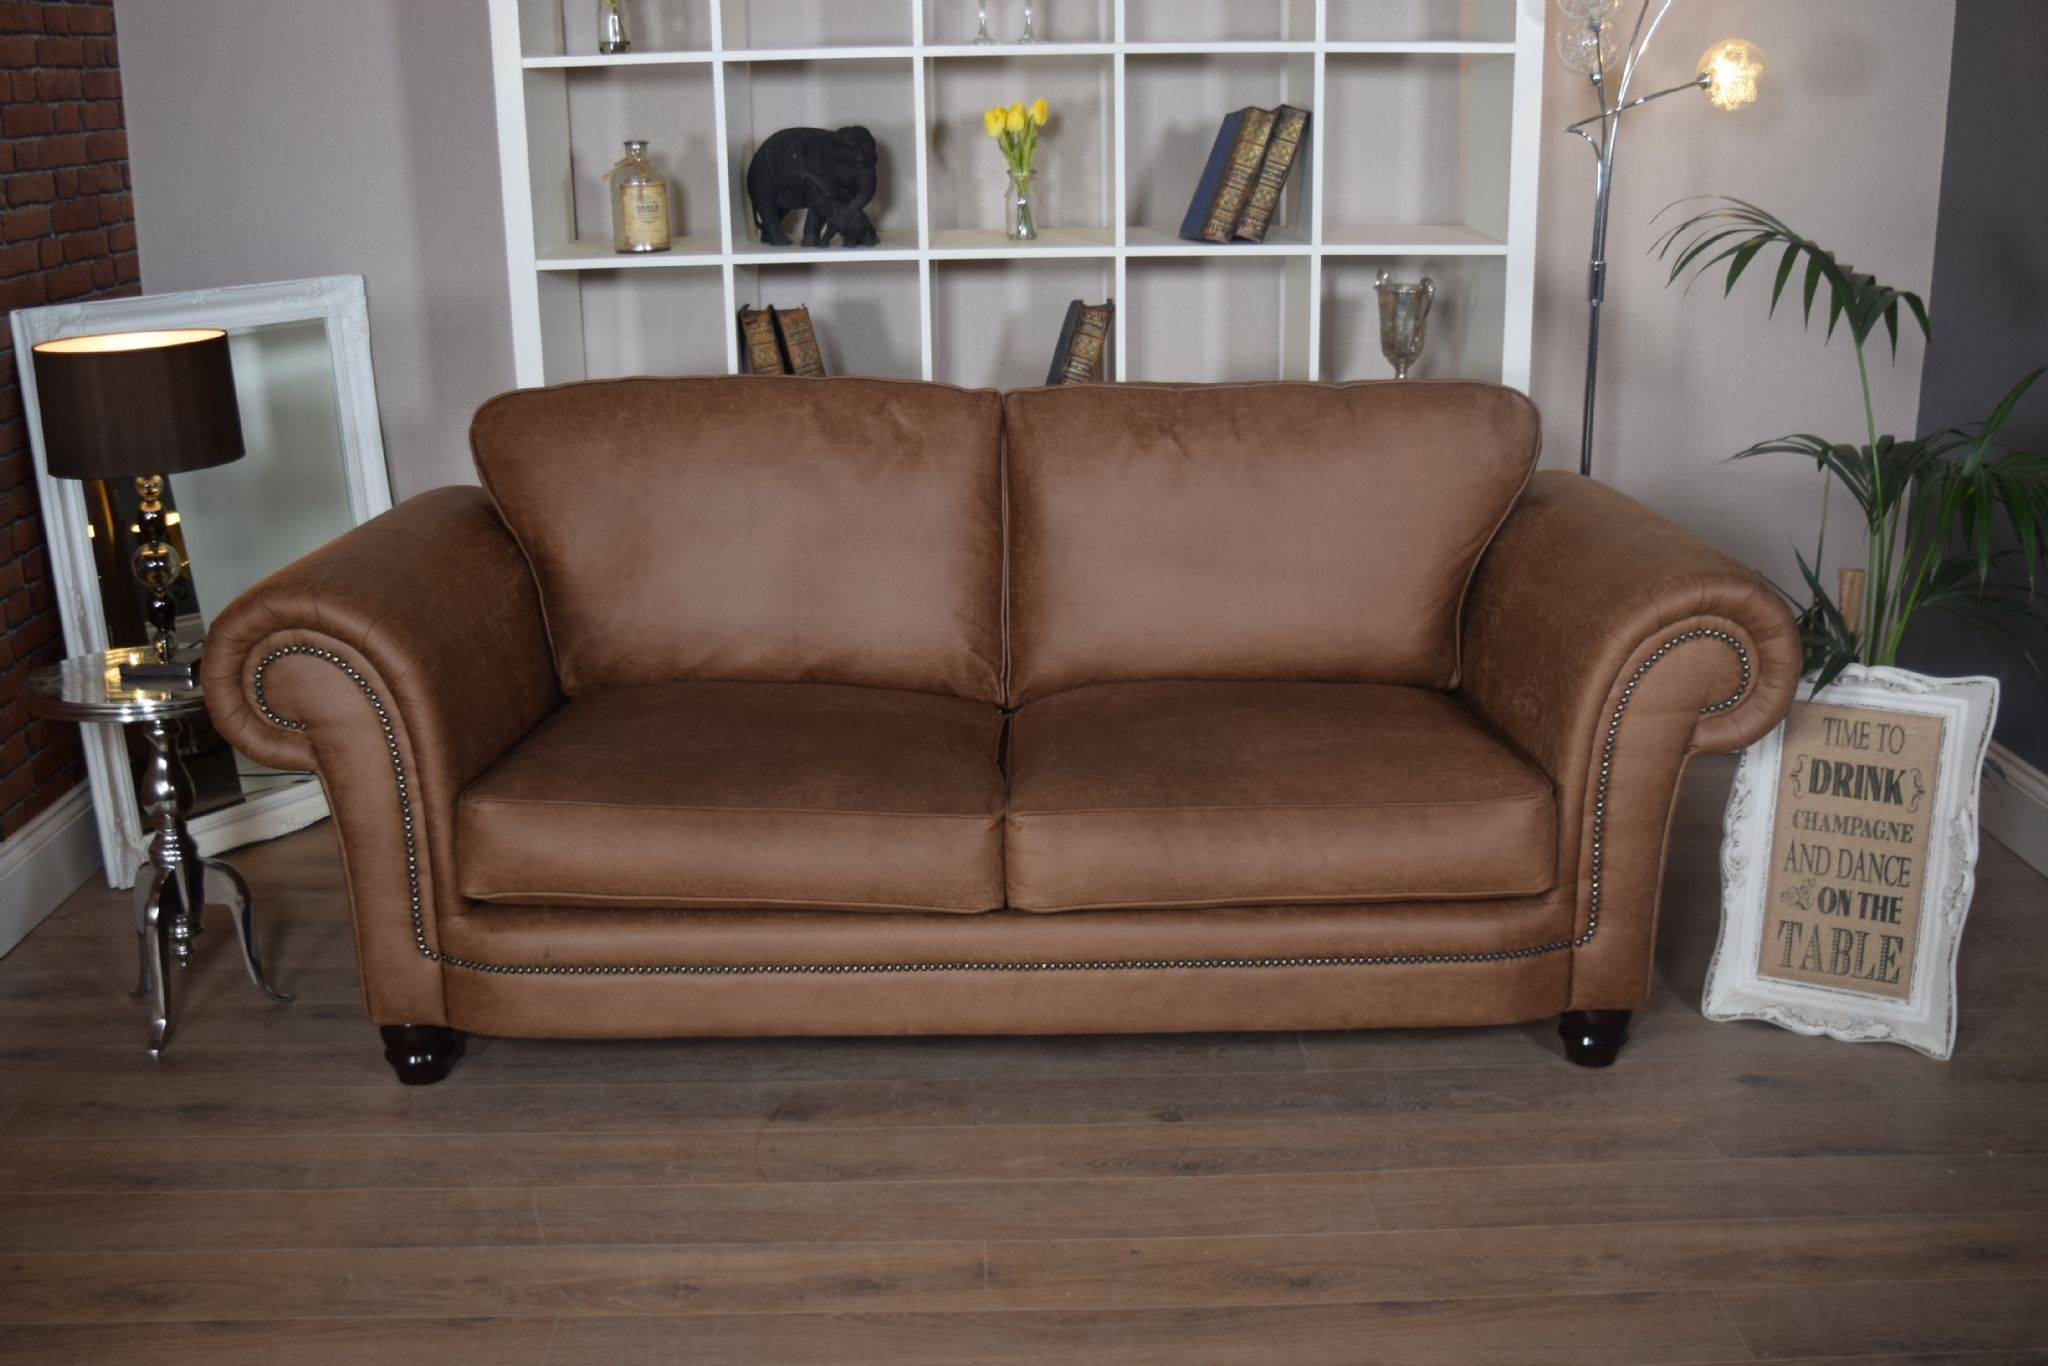 Set Abbey Downton 3 Seater Sofa & Large Cuddle Chair – Tan Fitted Back In 3 Seater Sofa And Cuddle Chairs (View 17 of 30)